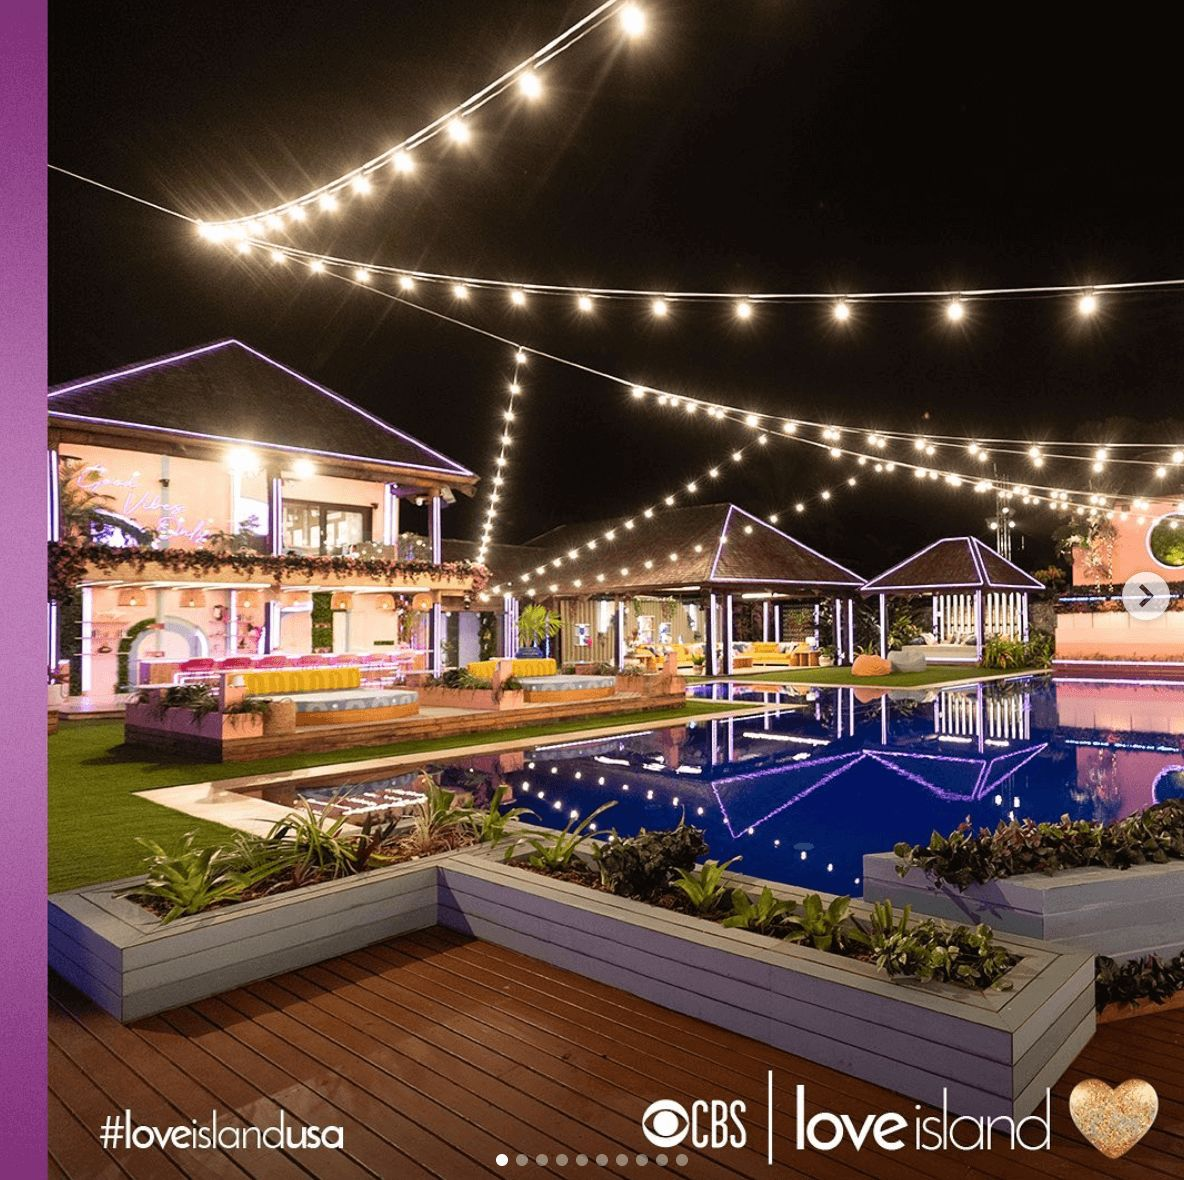 Image may contain: Love Island USA villa, Love Island USA, villa, Love Island, CBS, Fiji, outside, pool, Water, Building, Lighting